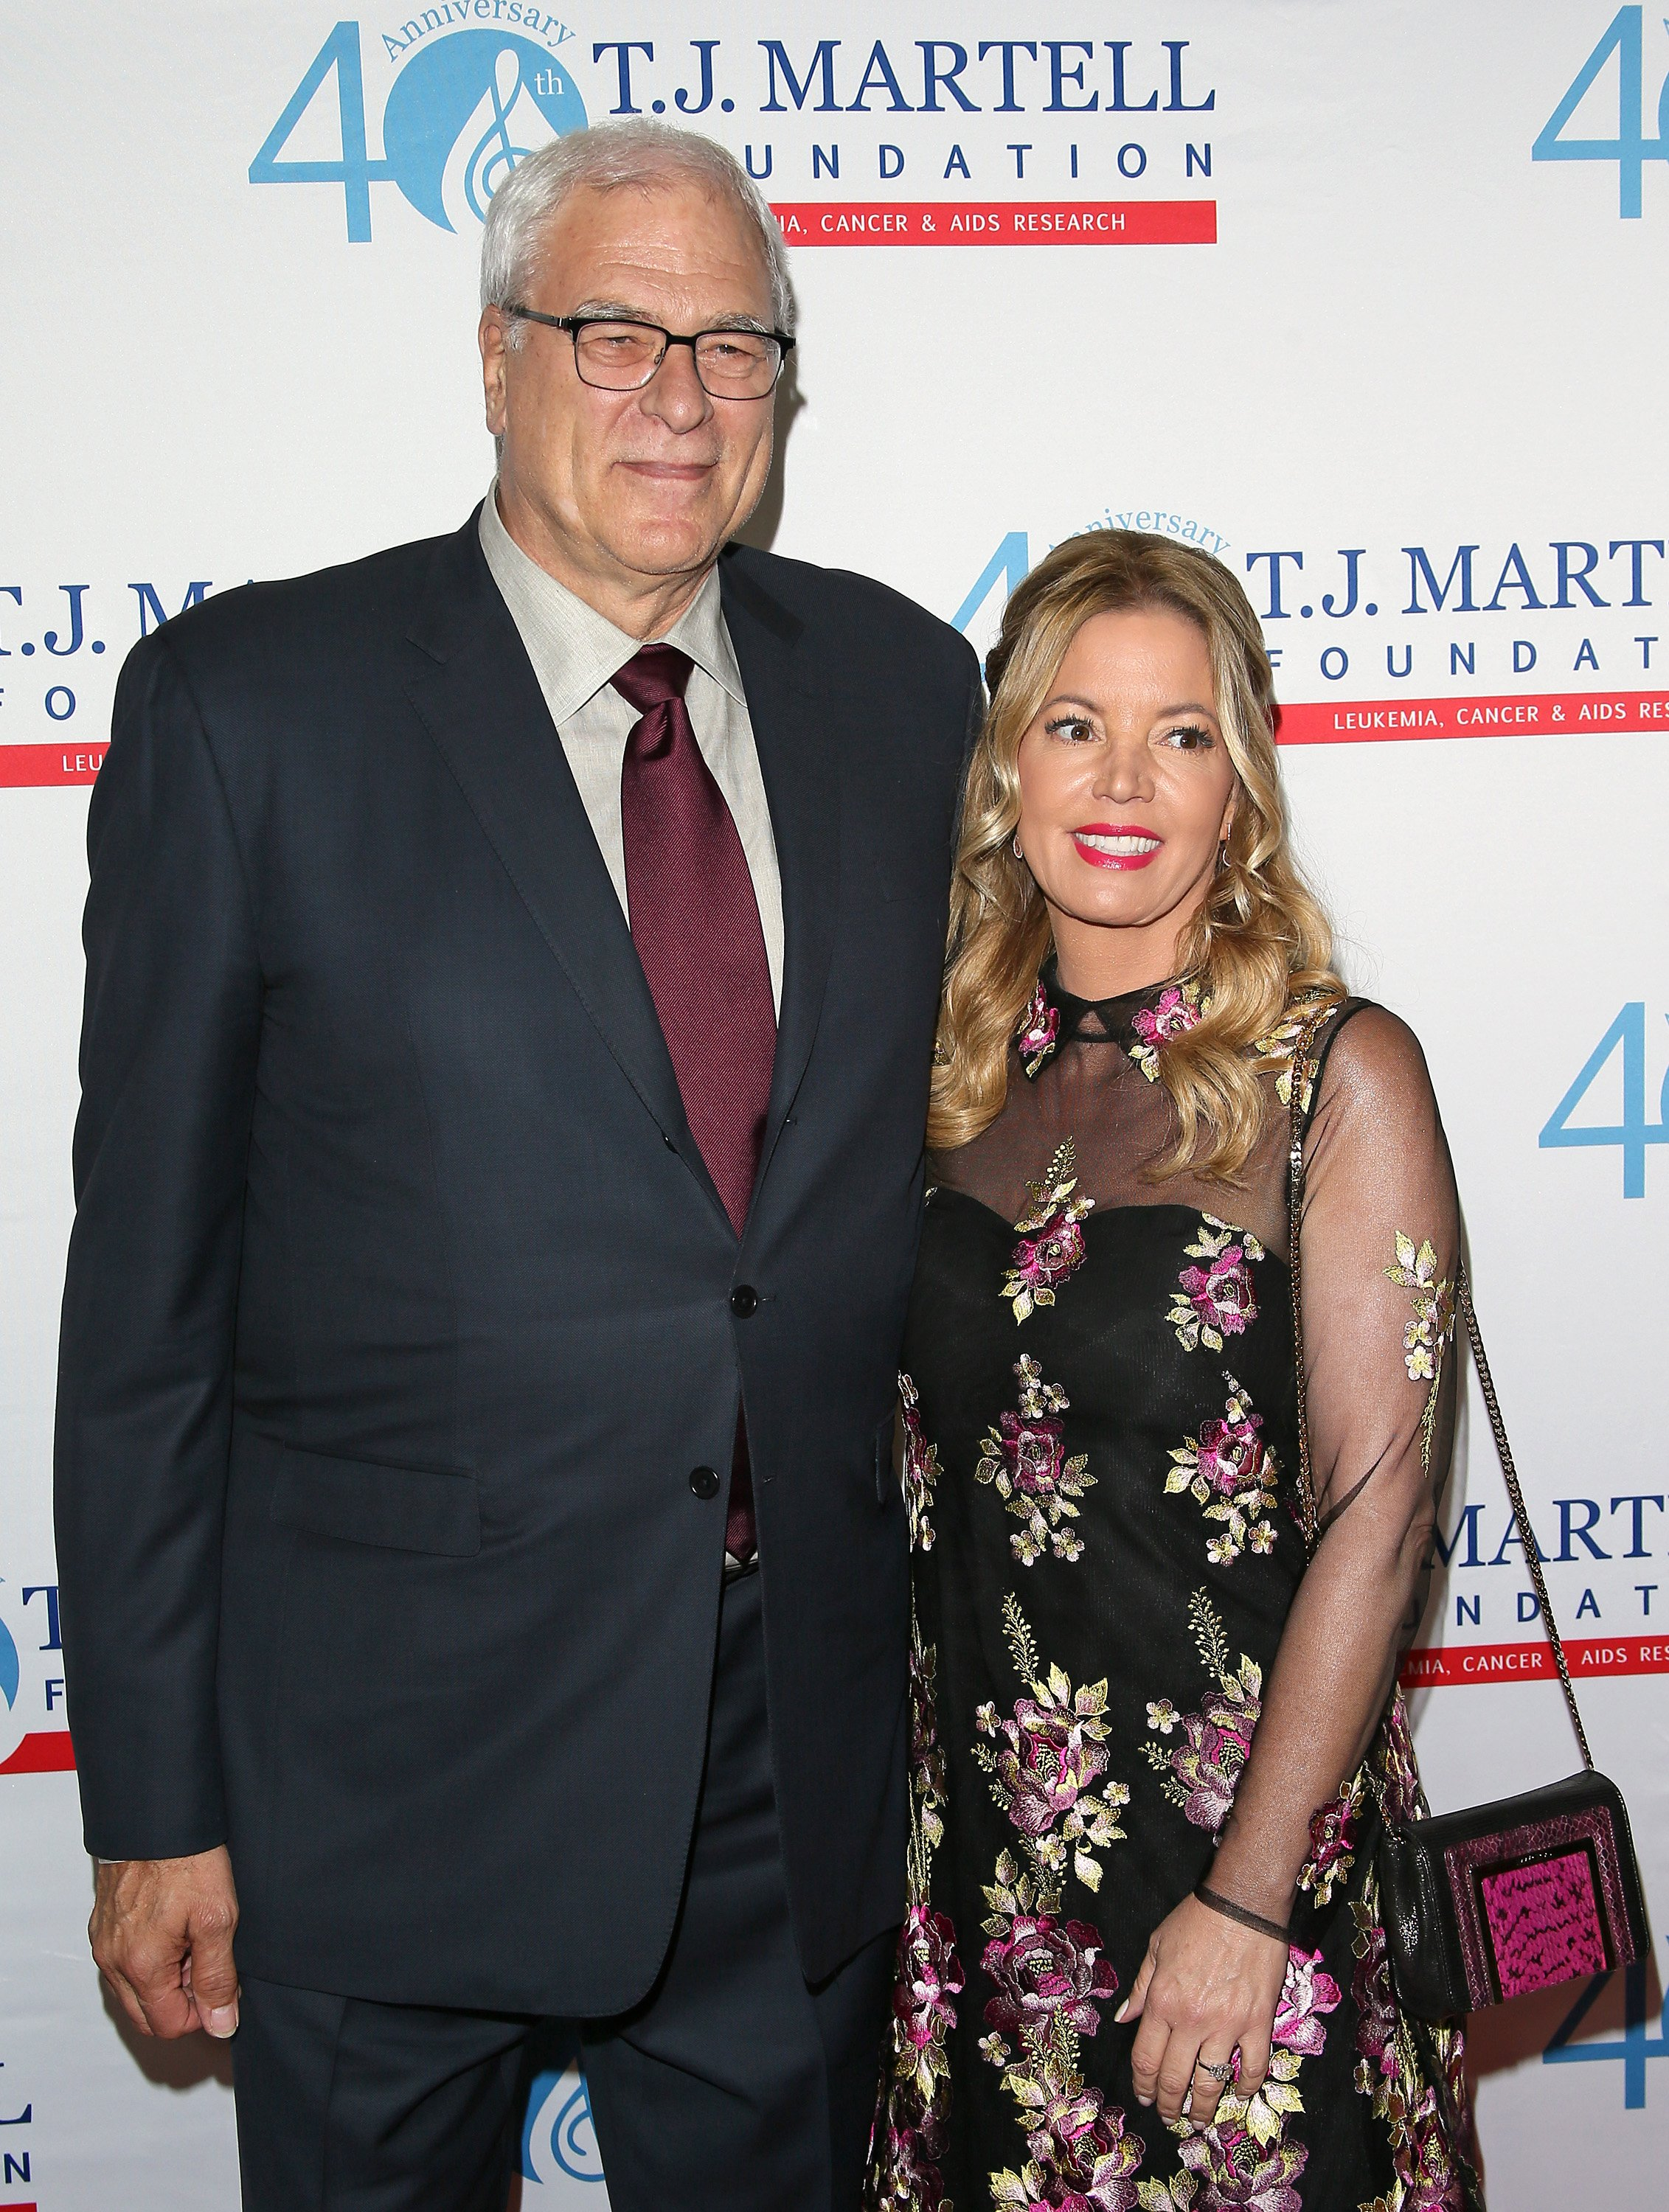 Phil Jackson and Jeanie Buss arrive at the T.J. Martell Foundation's Spirit of Excellence Awards held at the Beverly Wilshire Four Seasons Hotel on September 1, 2015 | Photo: Getty Images